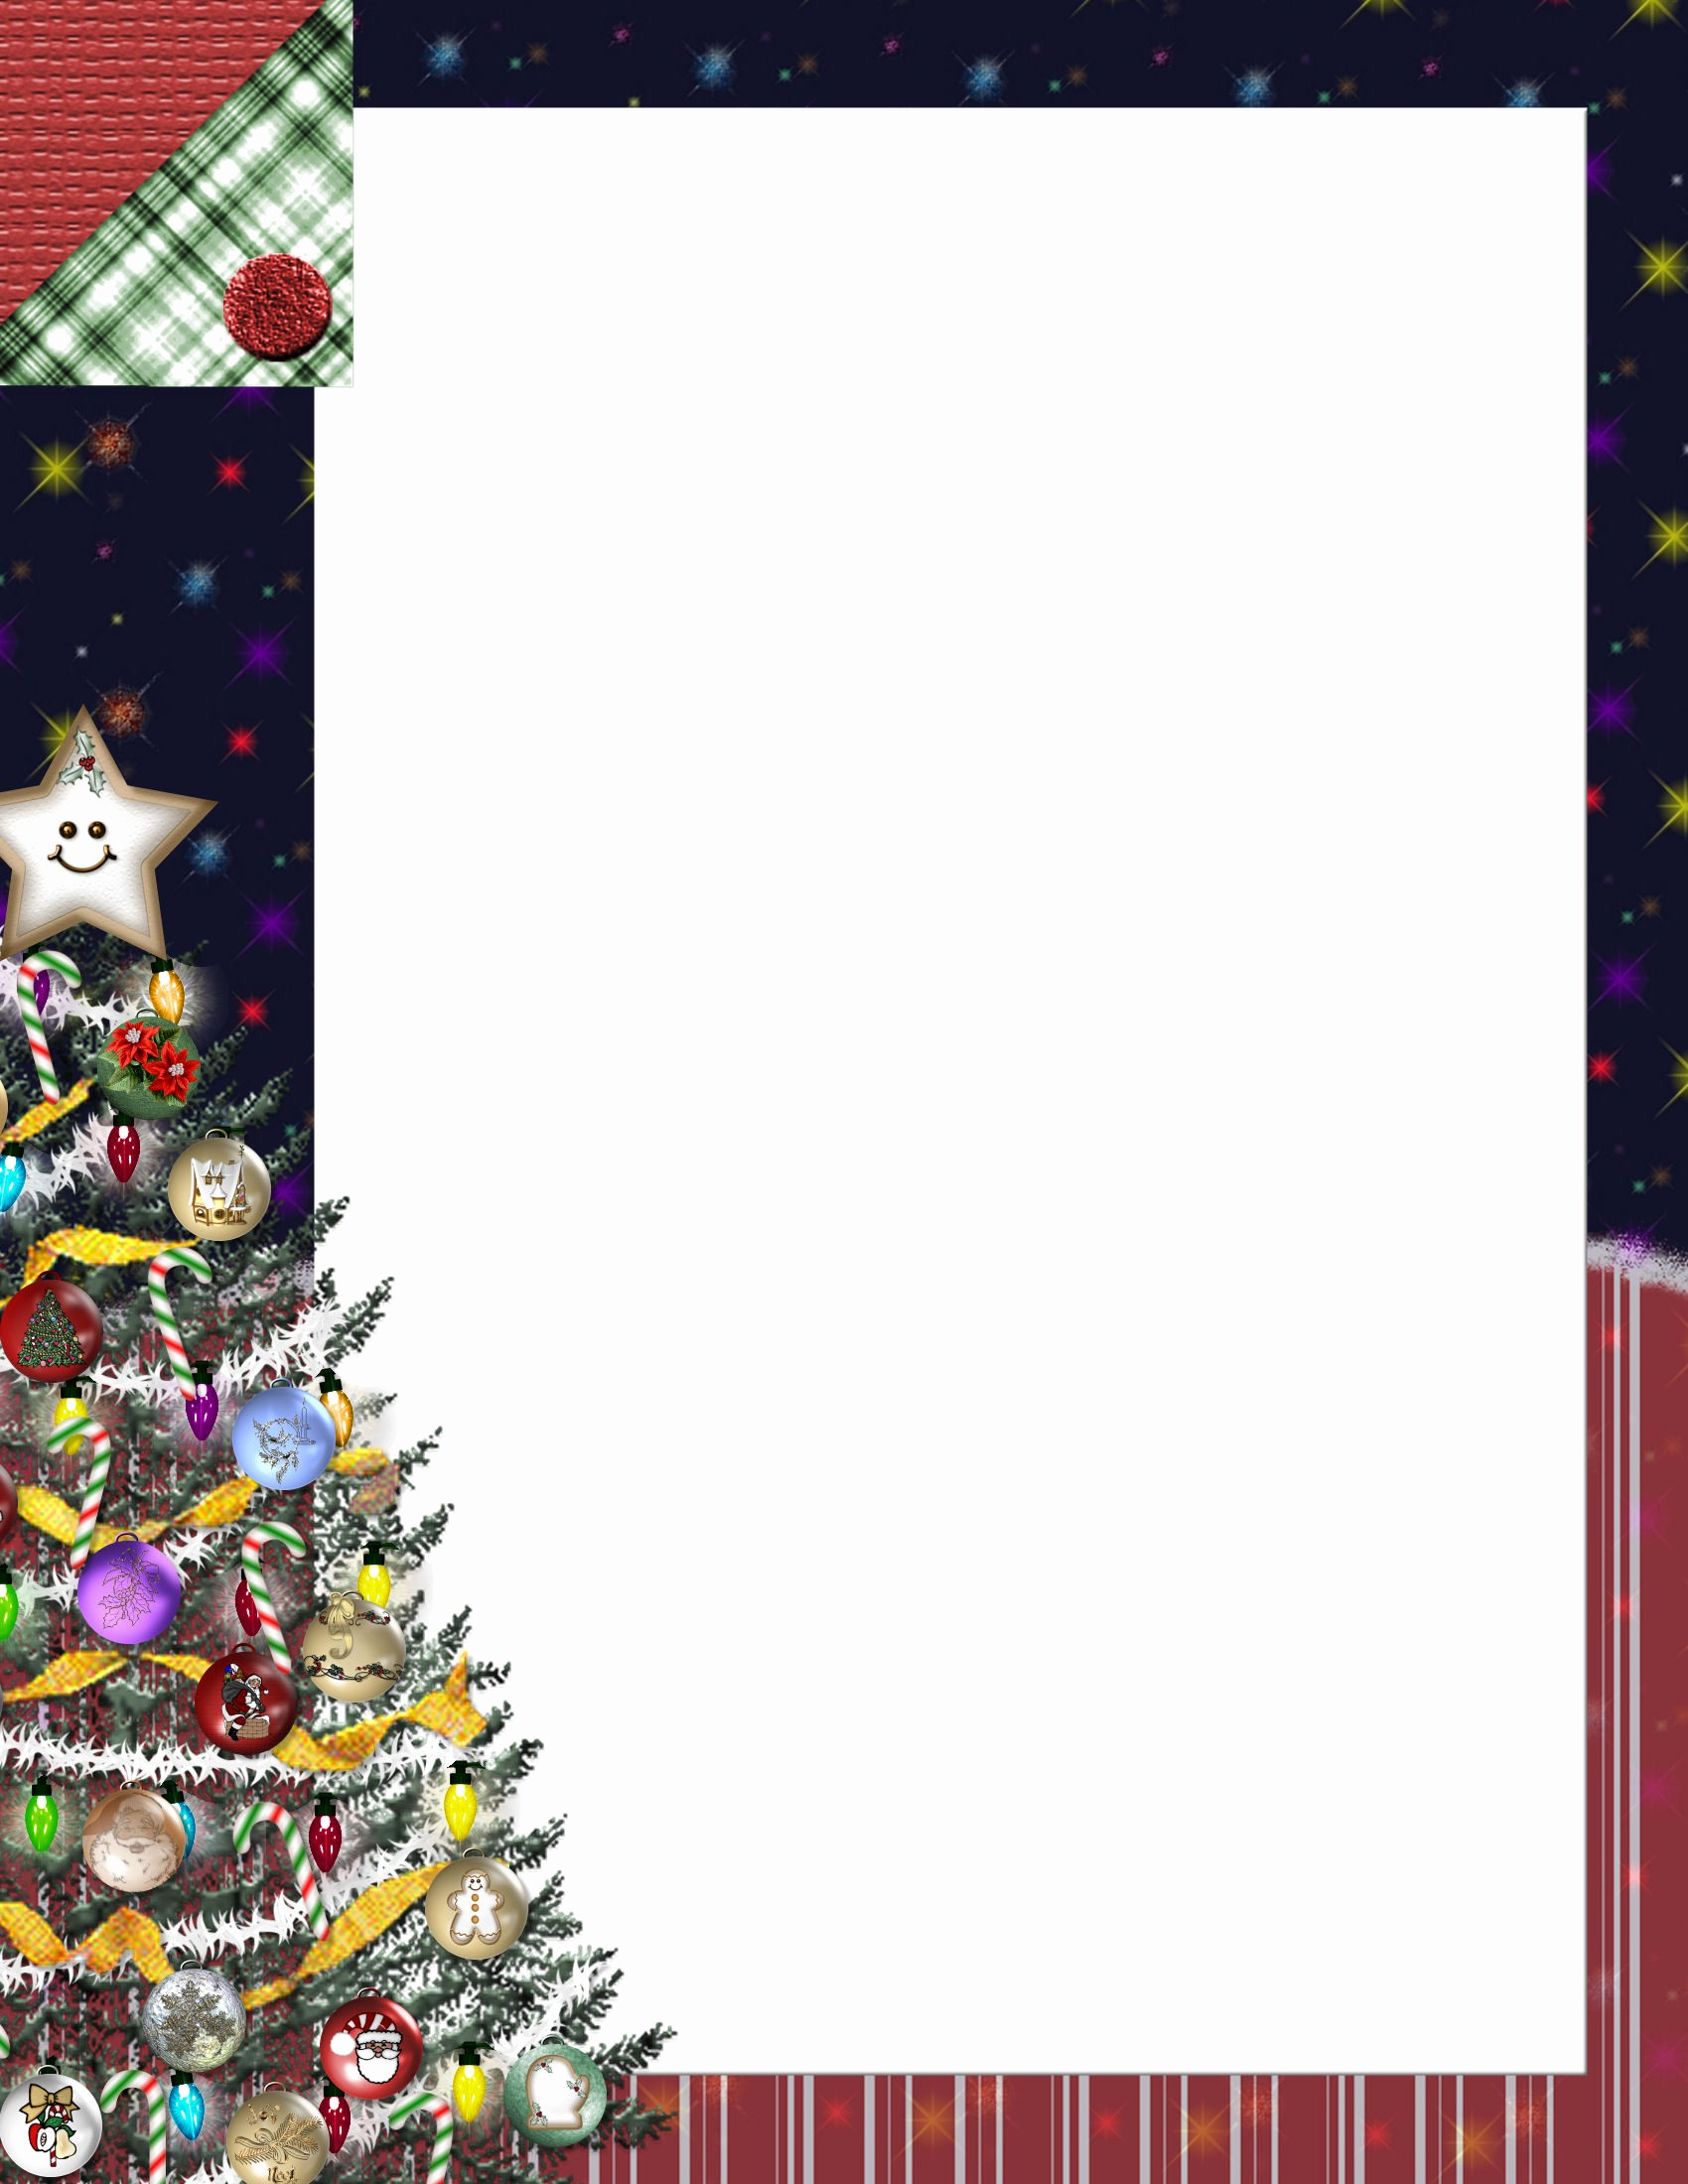 Christmas Stationery Templates Word Free New Christmas 1 Free Stationery Template Downloads